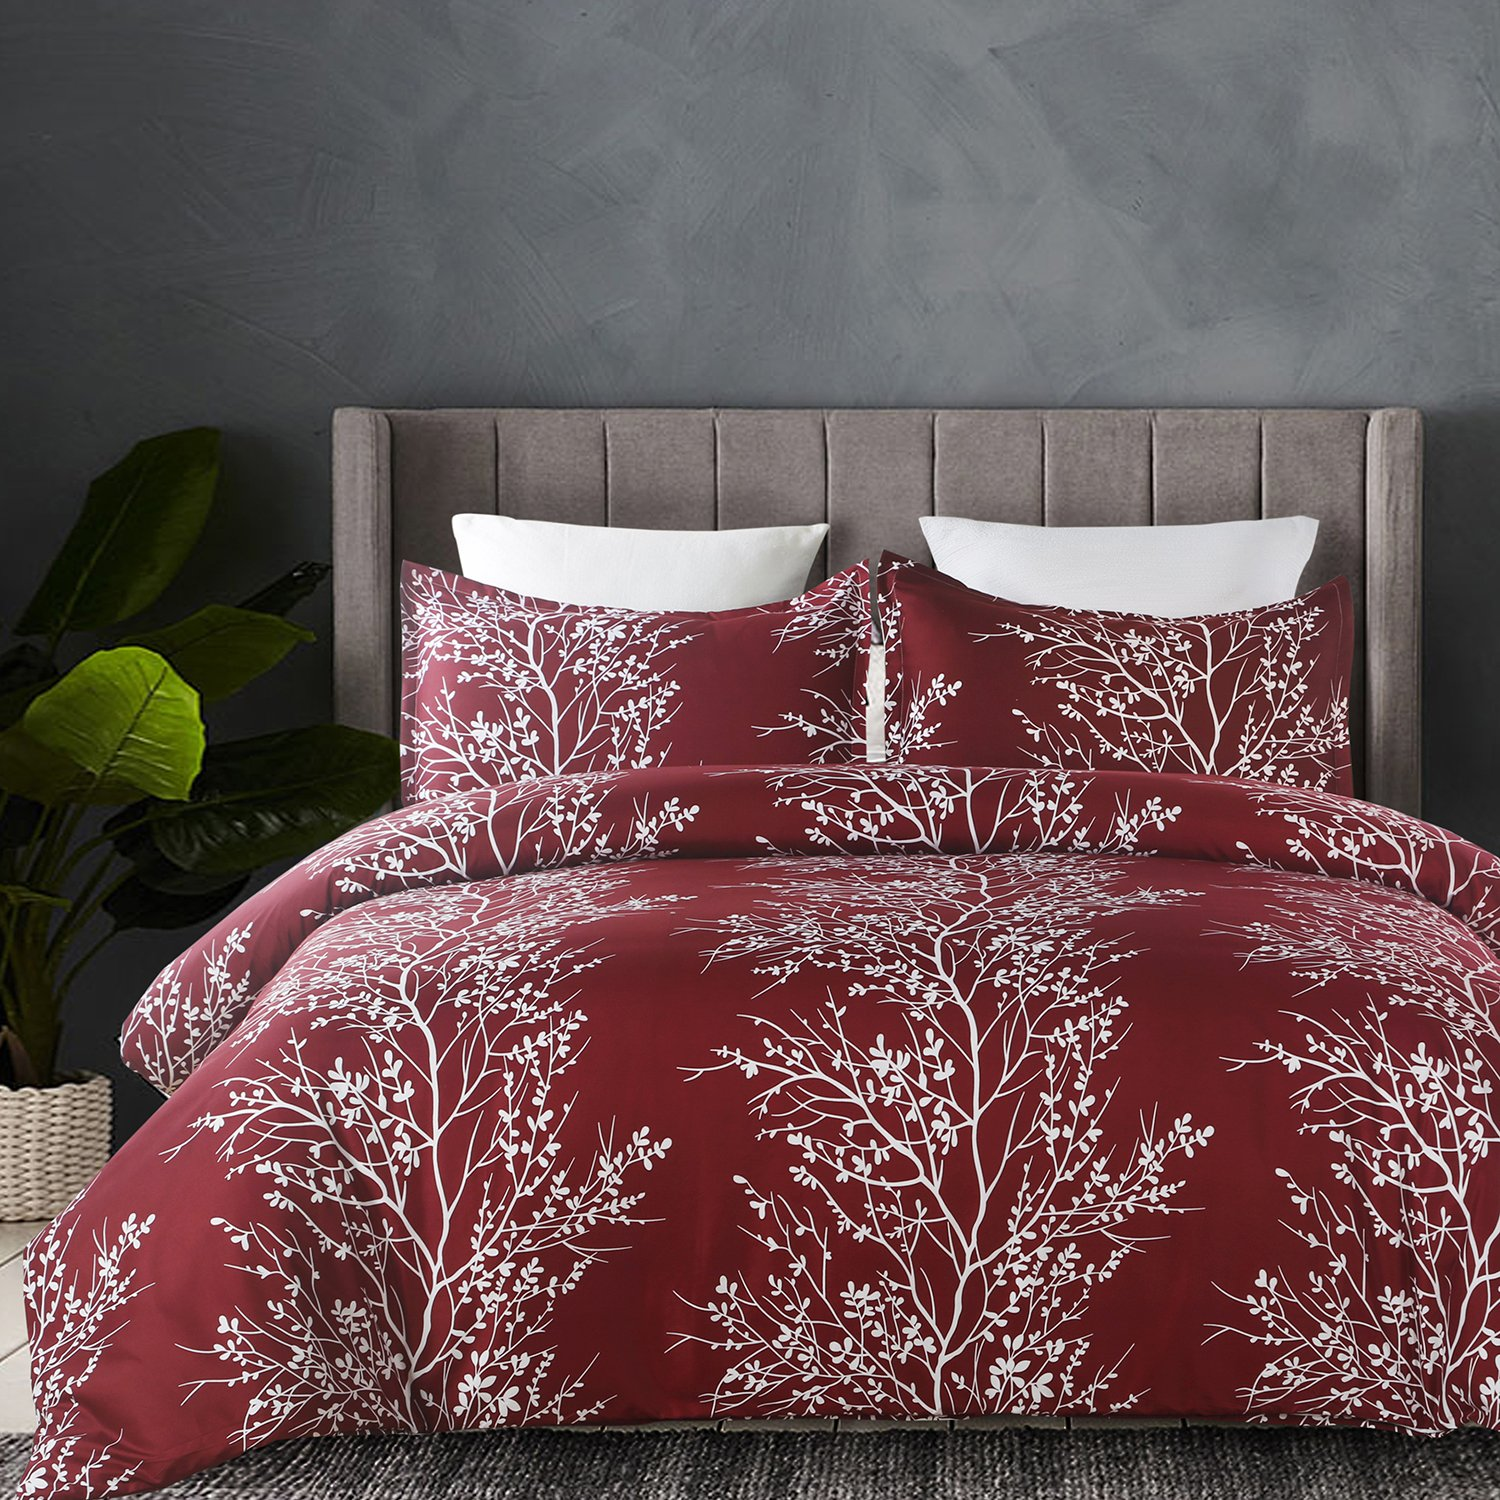 Duvet Cover Set, Tree Branch Printed Pattern Design - Burgundy Red, King Size